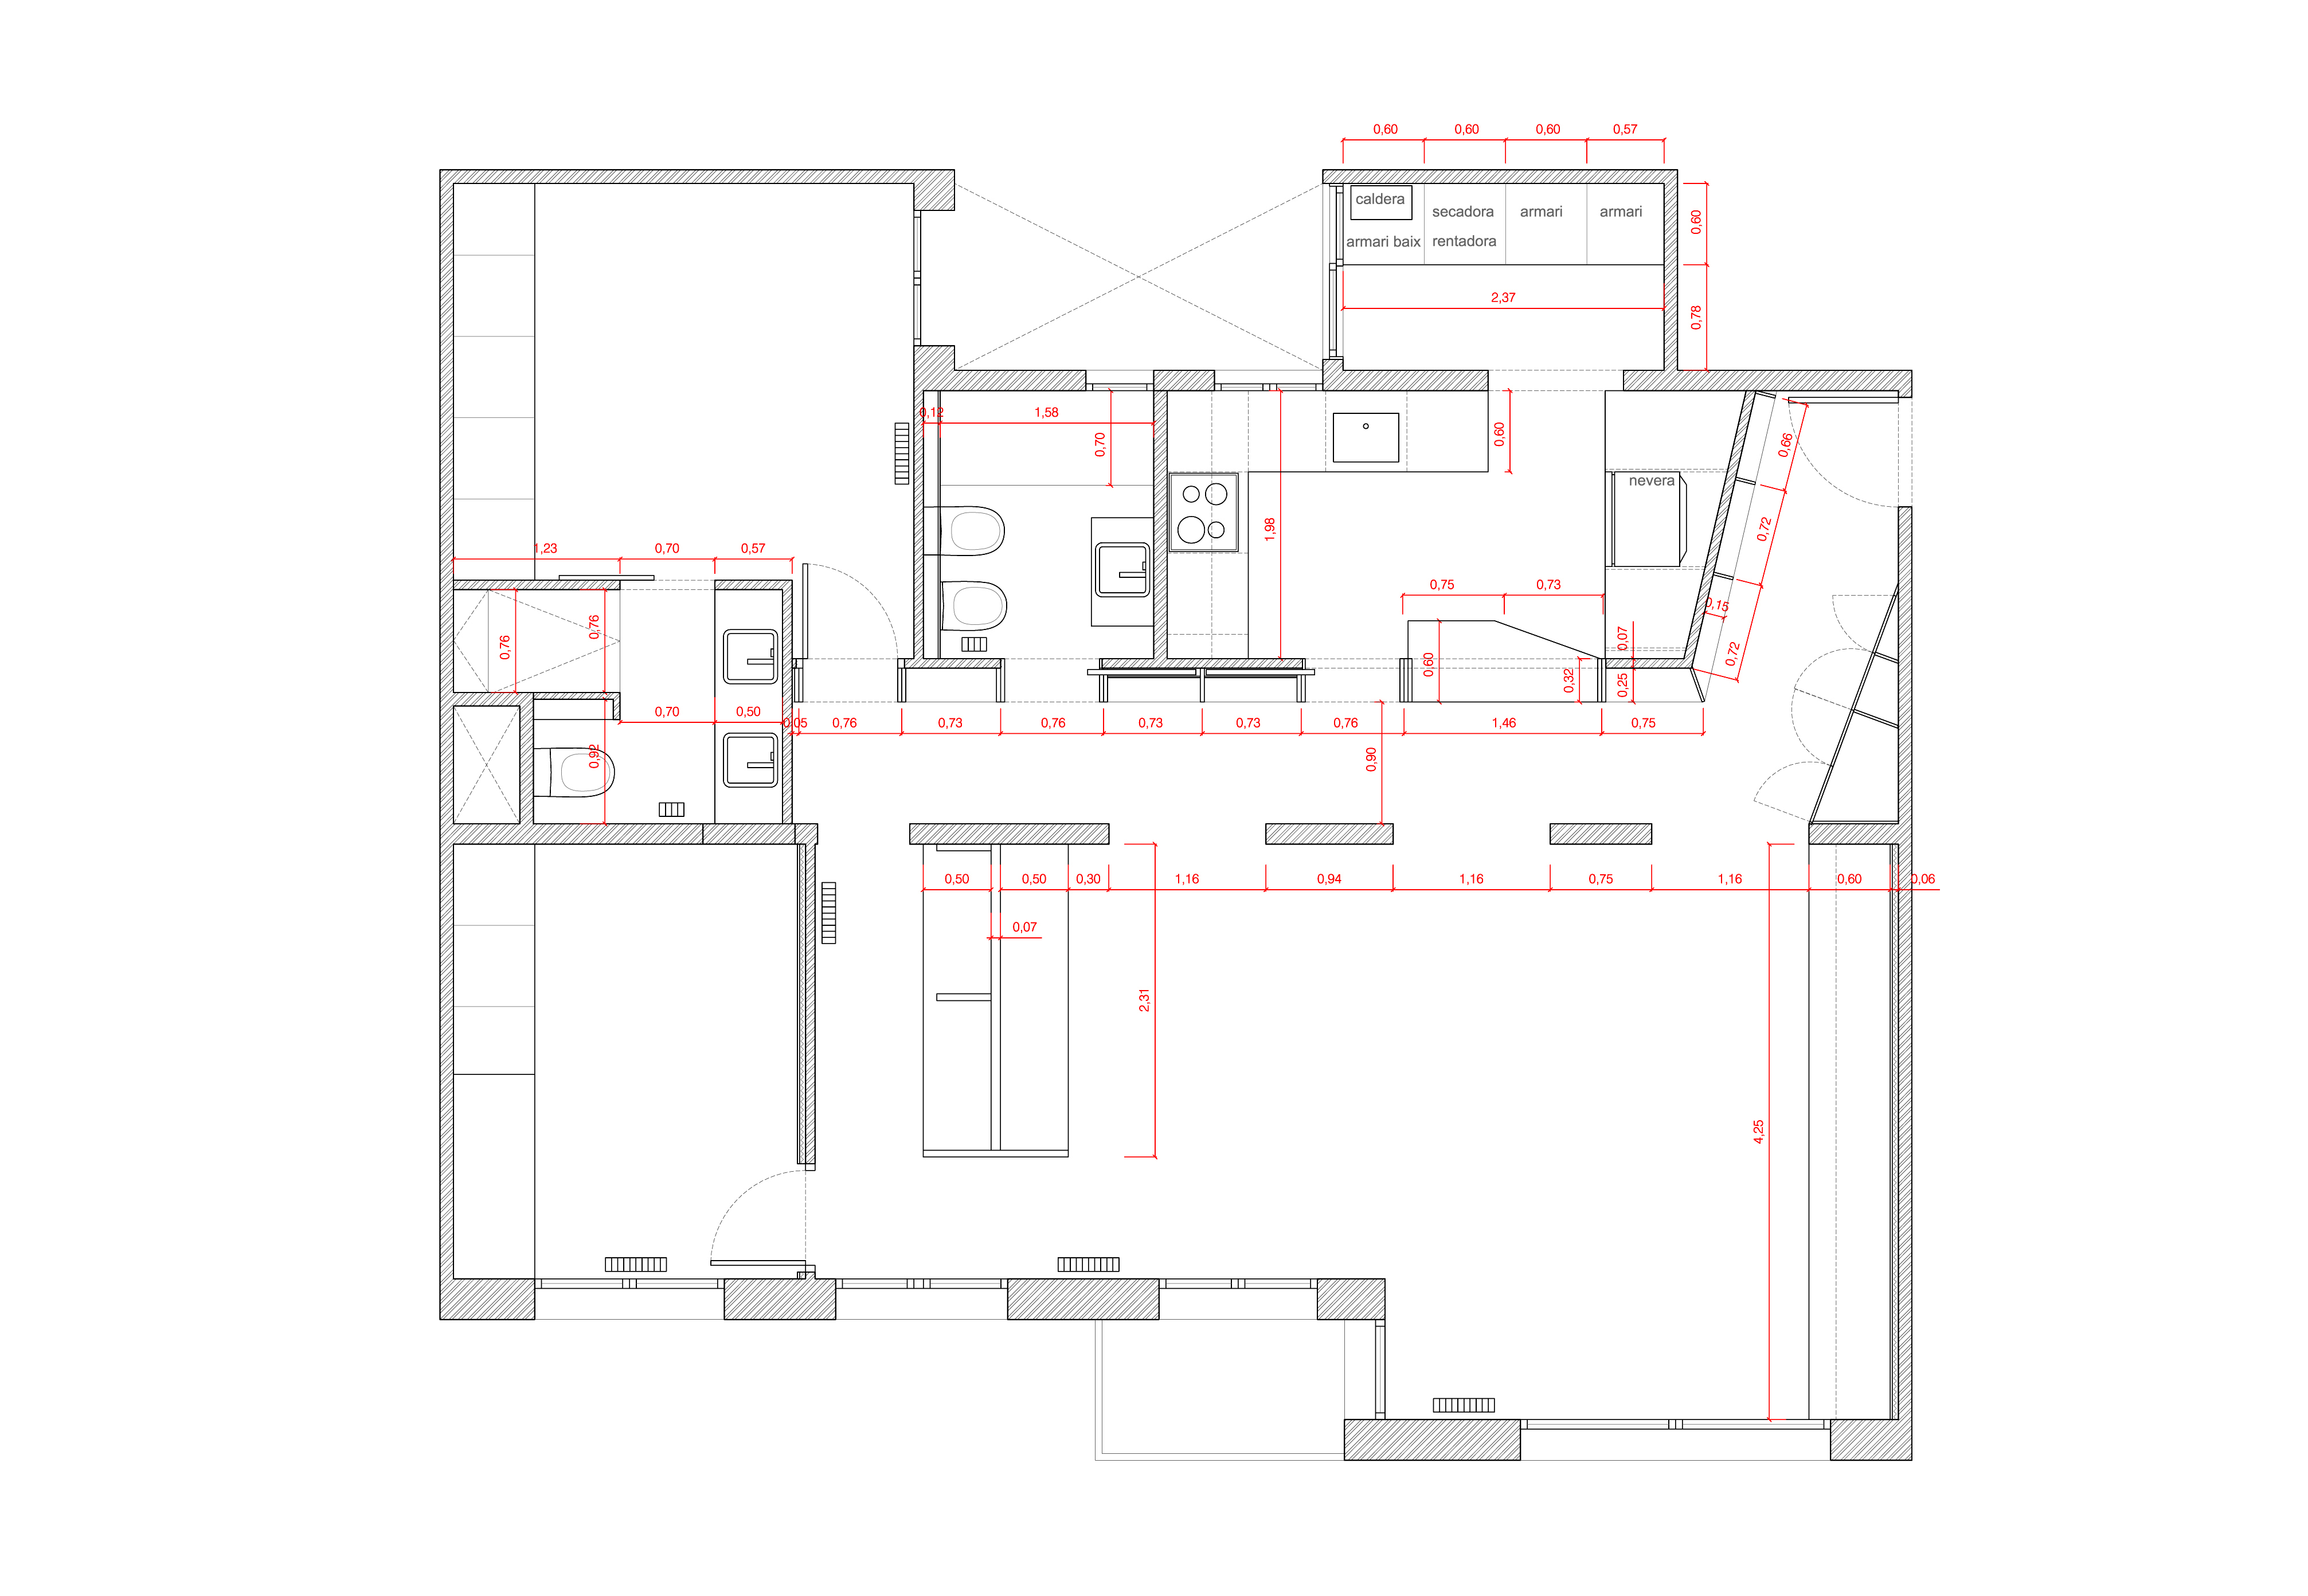 D:Arquitectura�1_Projectes�036_Inma i Jaume house�6_PROJECTE